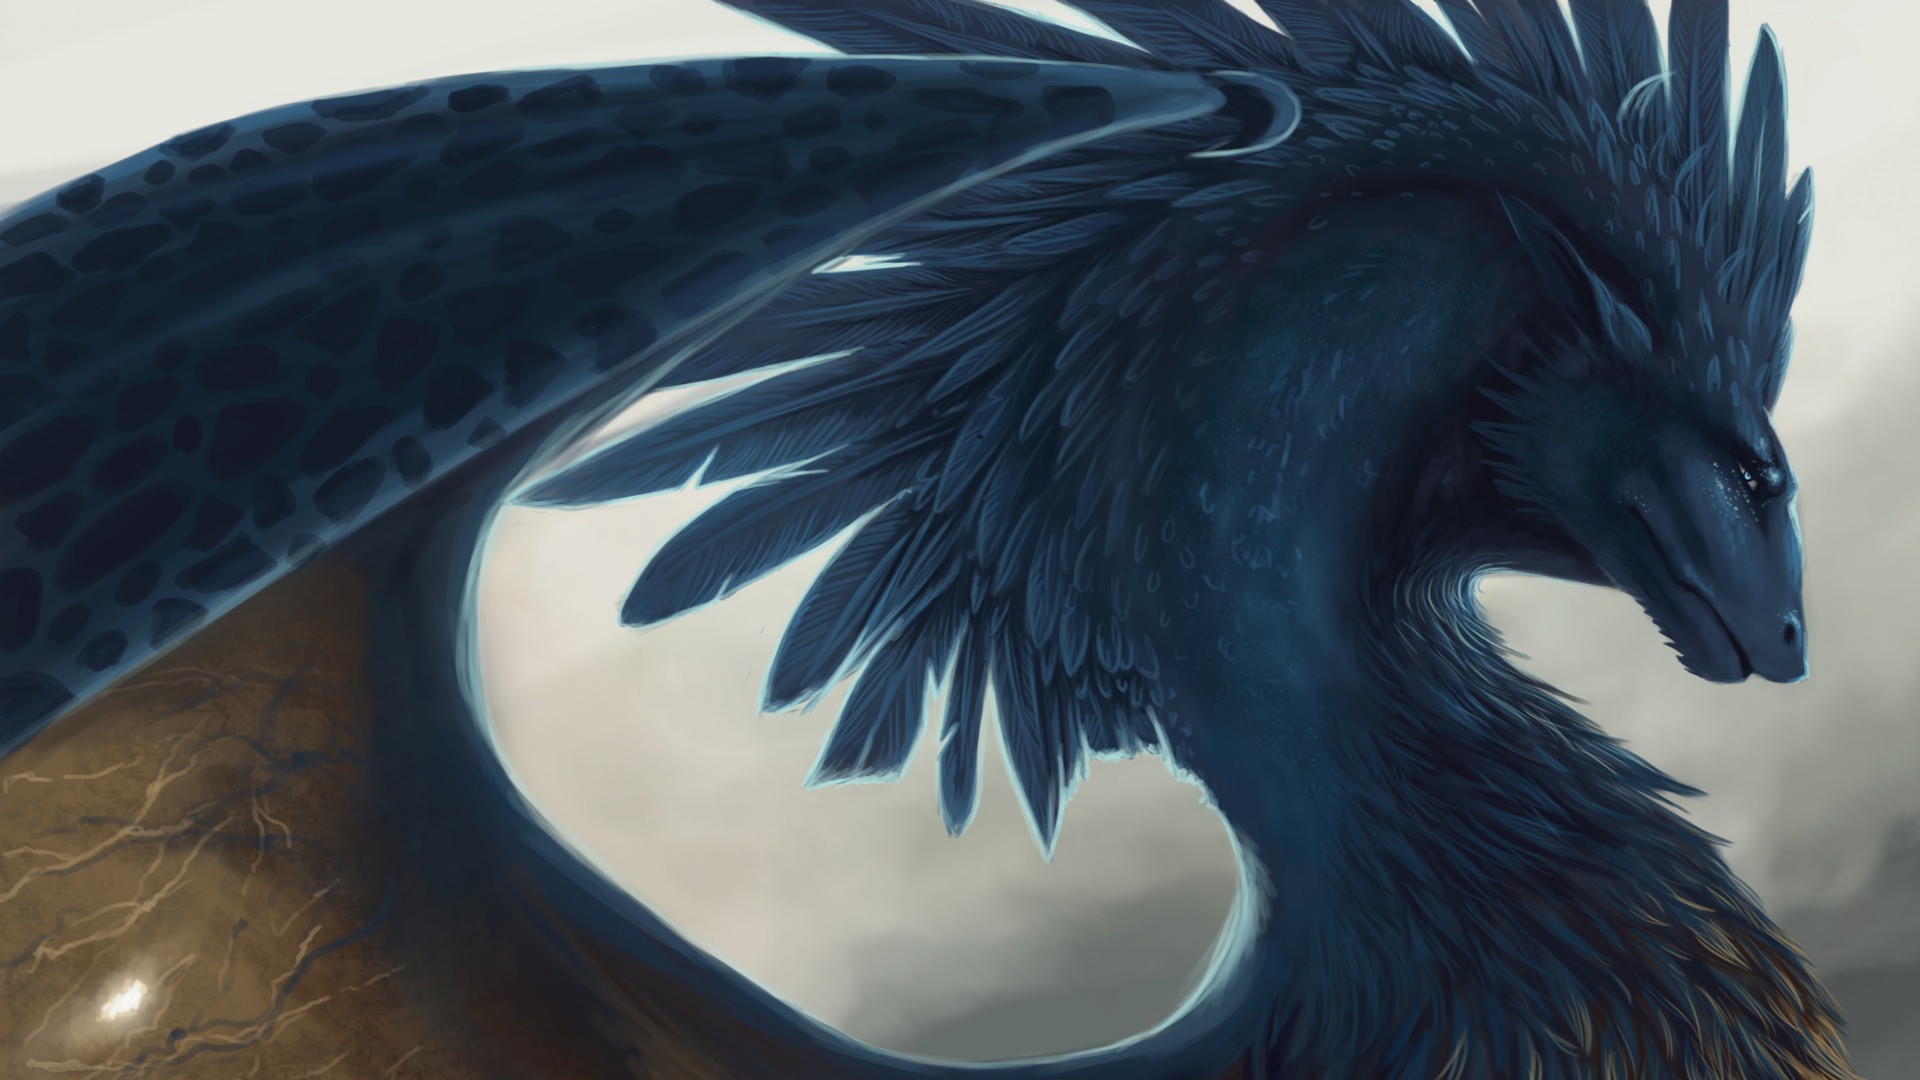 Feathers Art Dragon Design Wallpaper